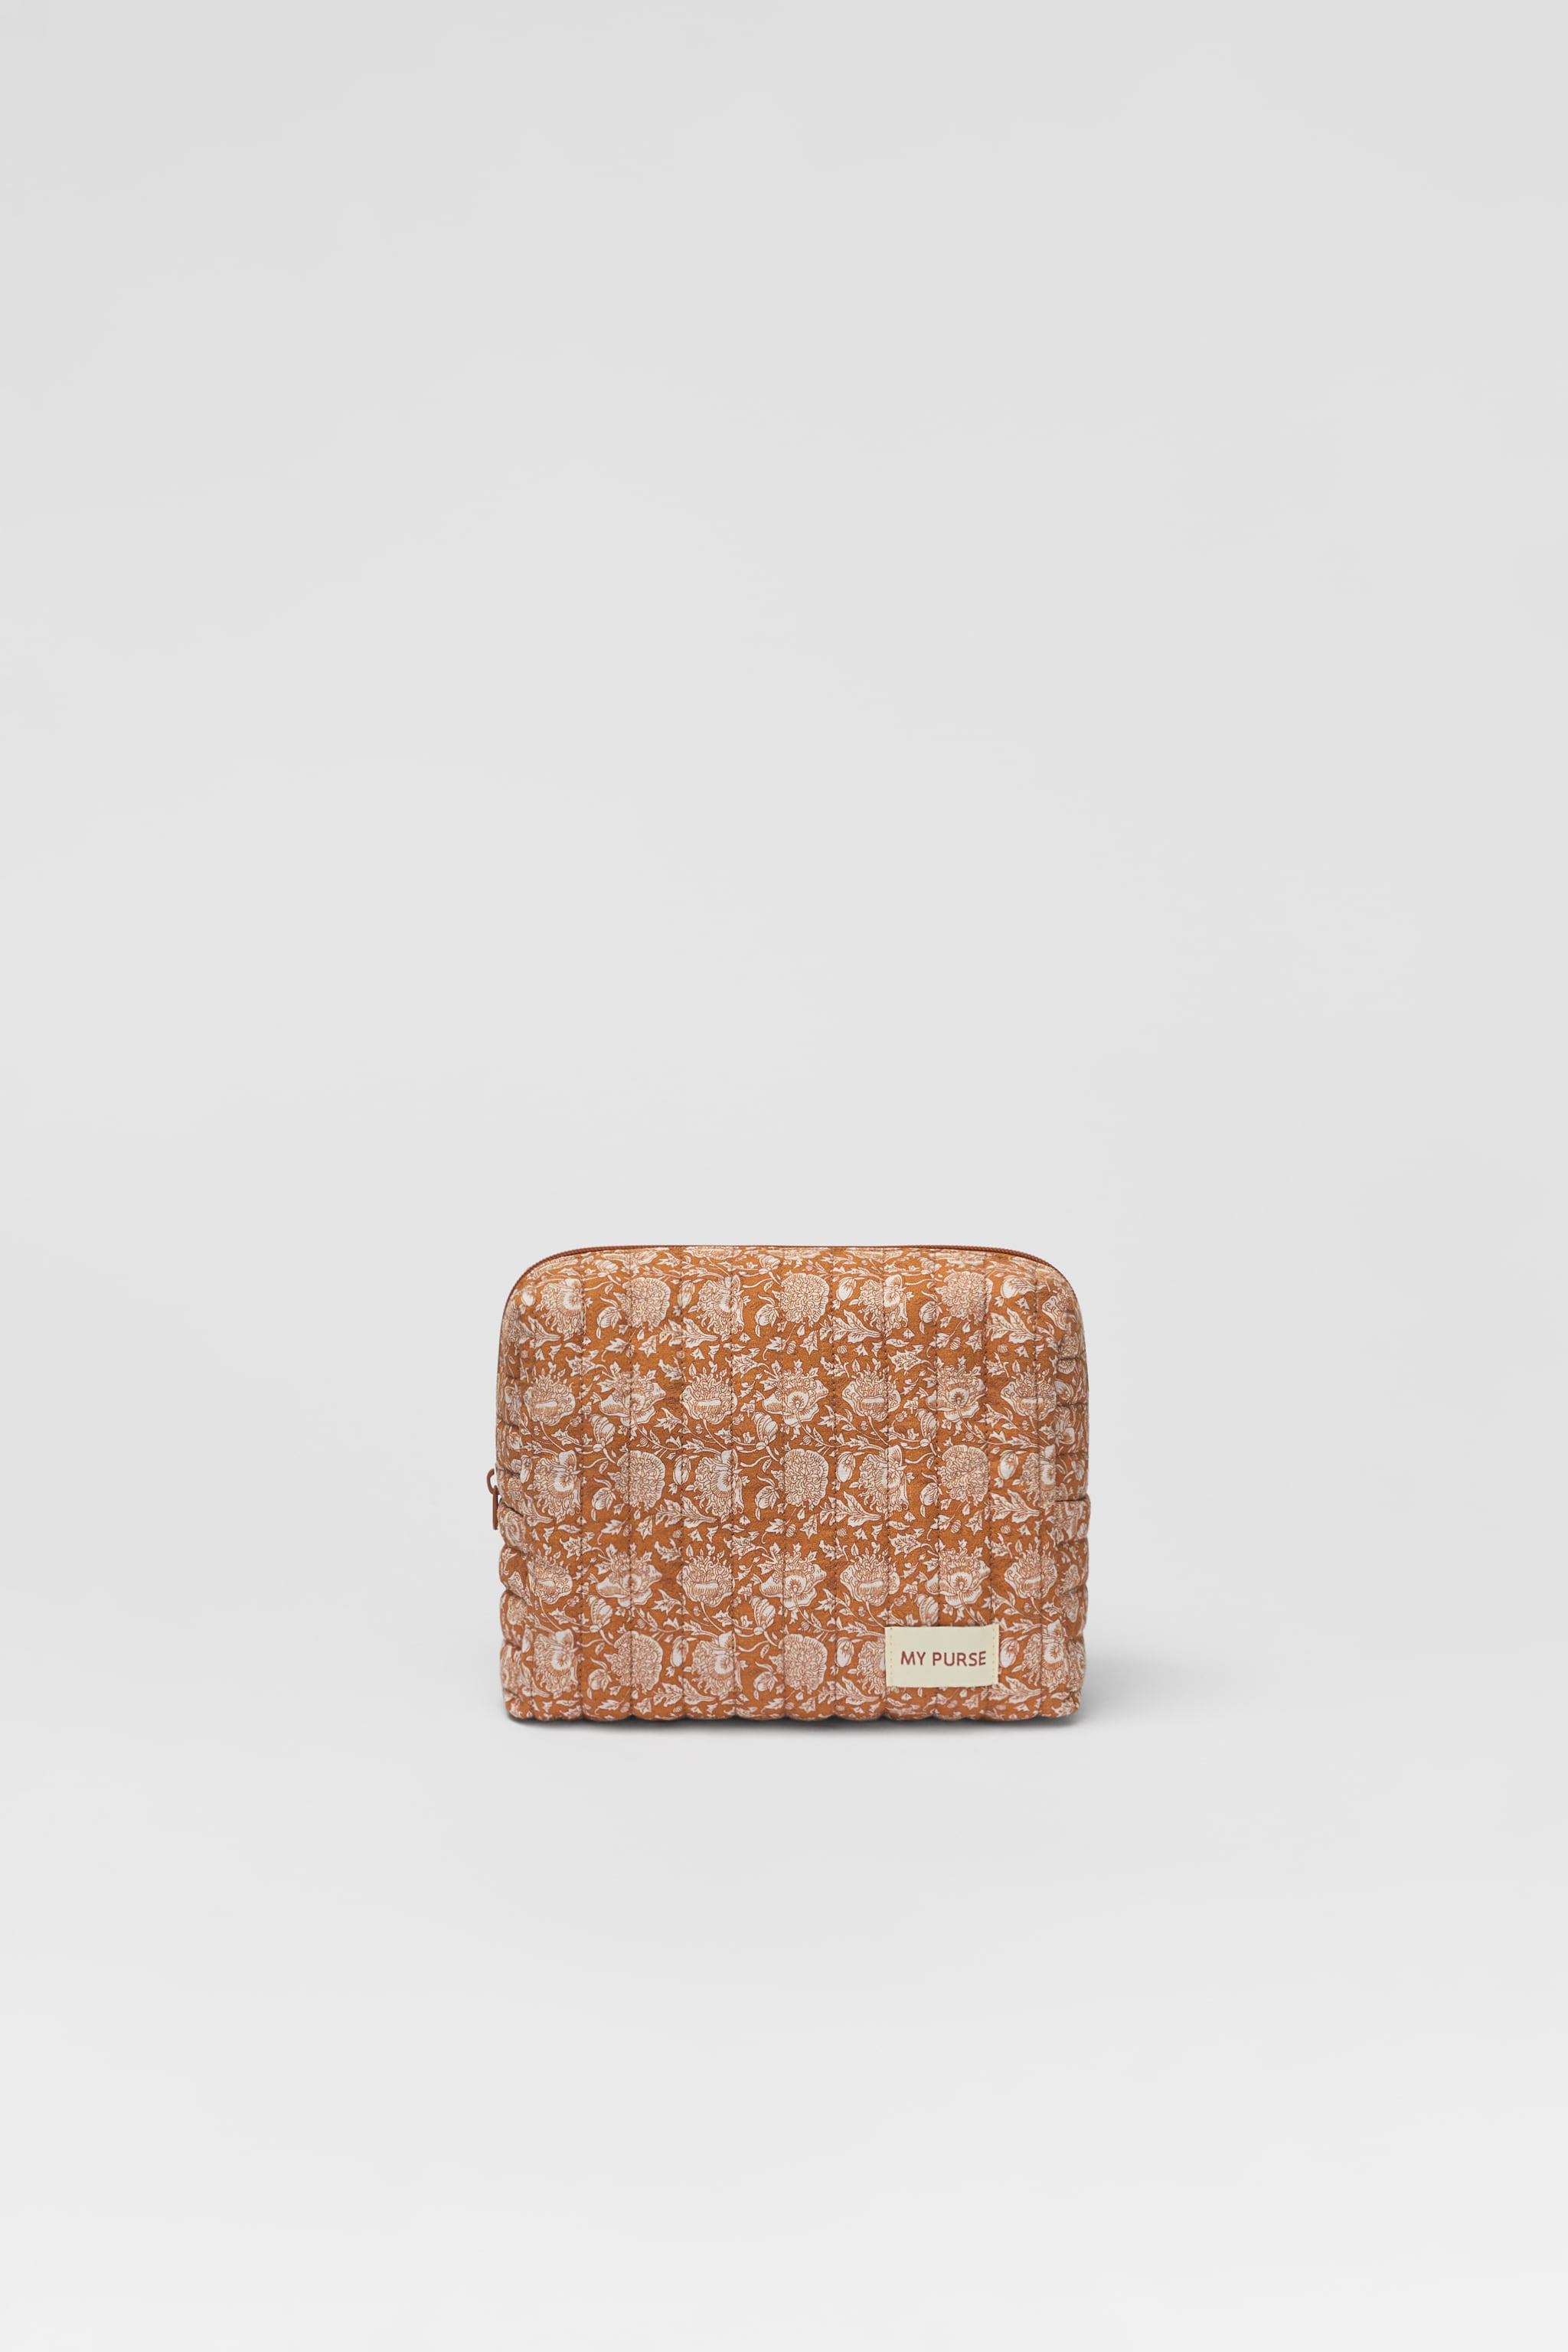 Zara QUILTED TOILETRY BAG